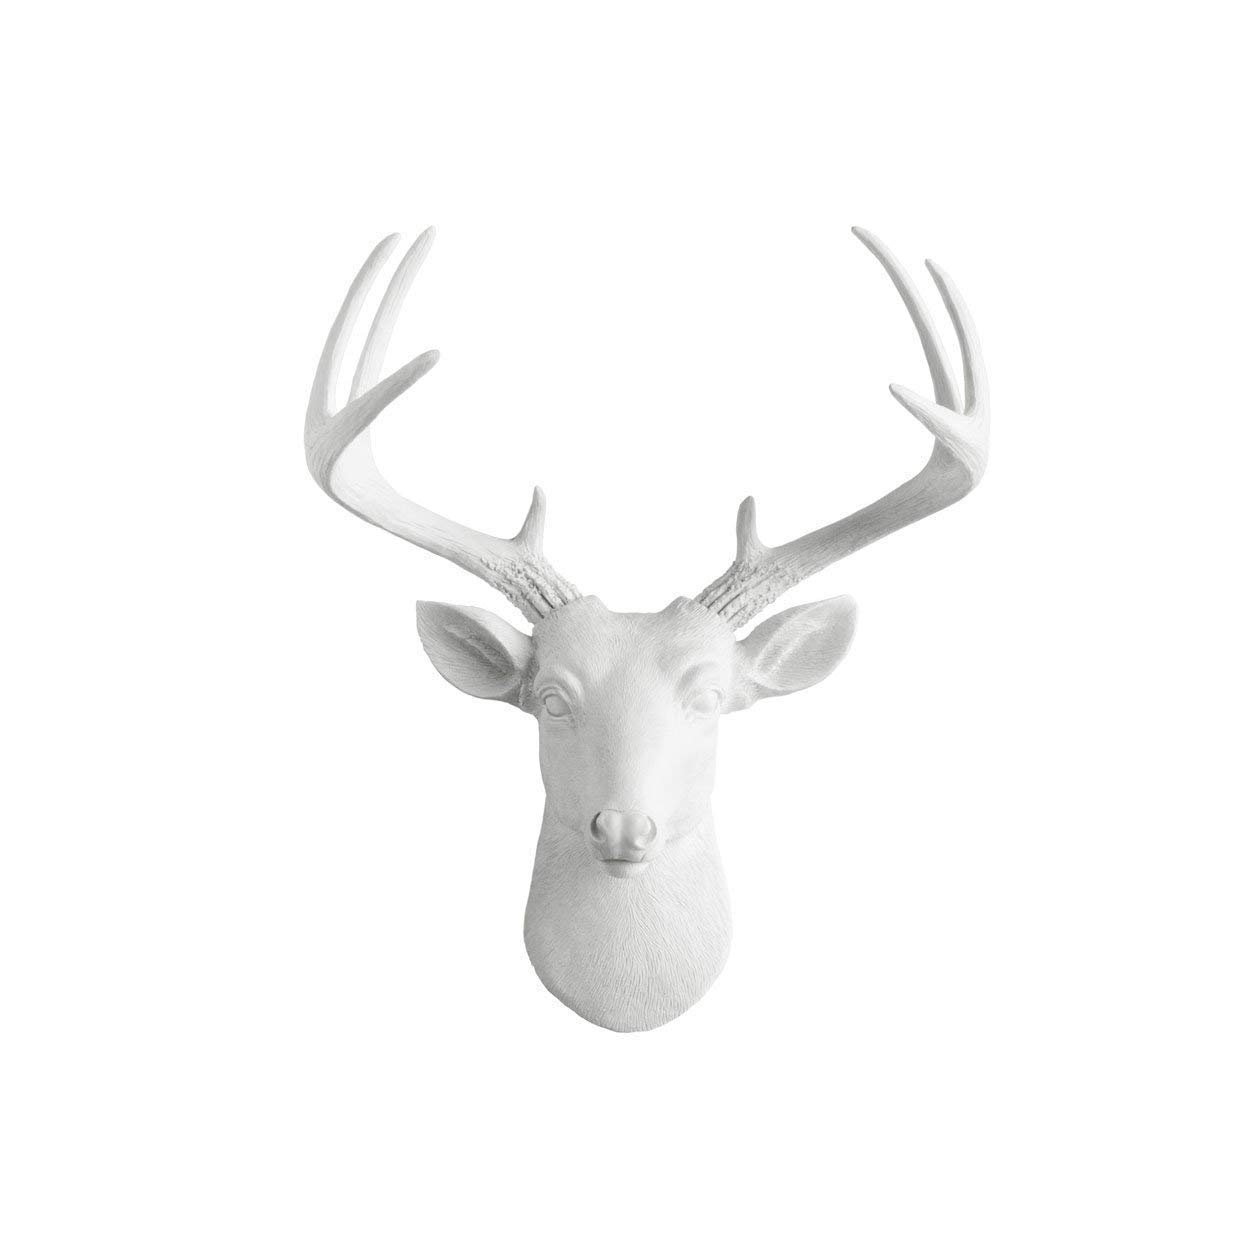 WallCharmers 14 Inch Mini White Faux Deer Head - Faux Taxidermy Animal Head Wall Decor - Handmade Farmhouse Decor - Fake Taxidermy Deer Antlers Gallery Wall Decor by Wall Charmers